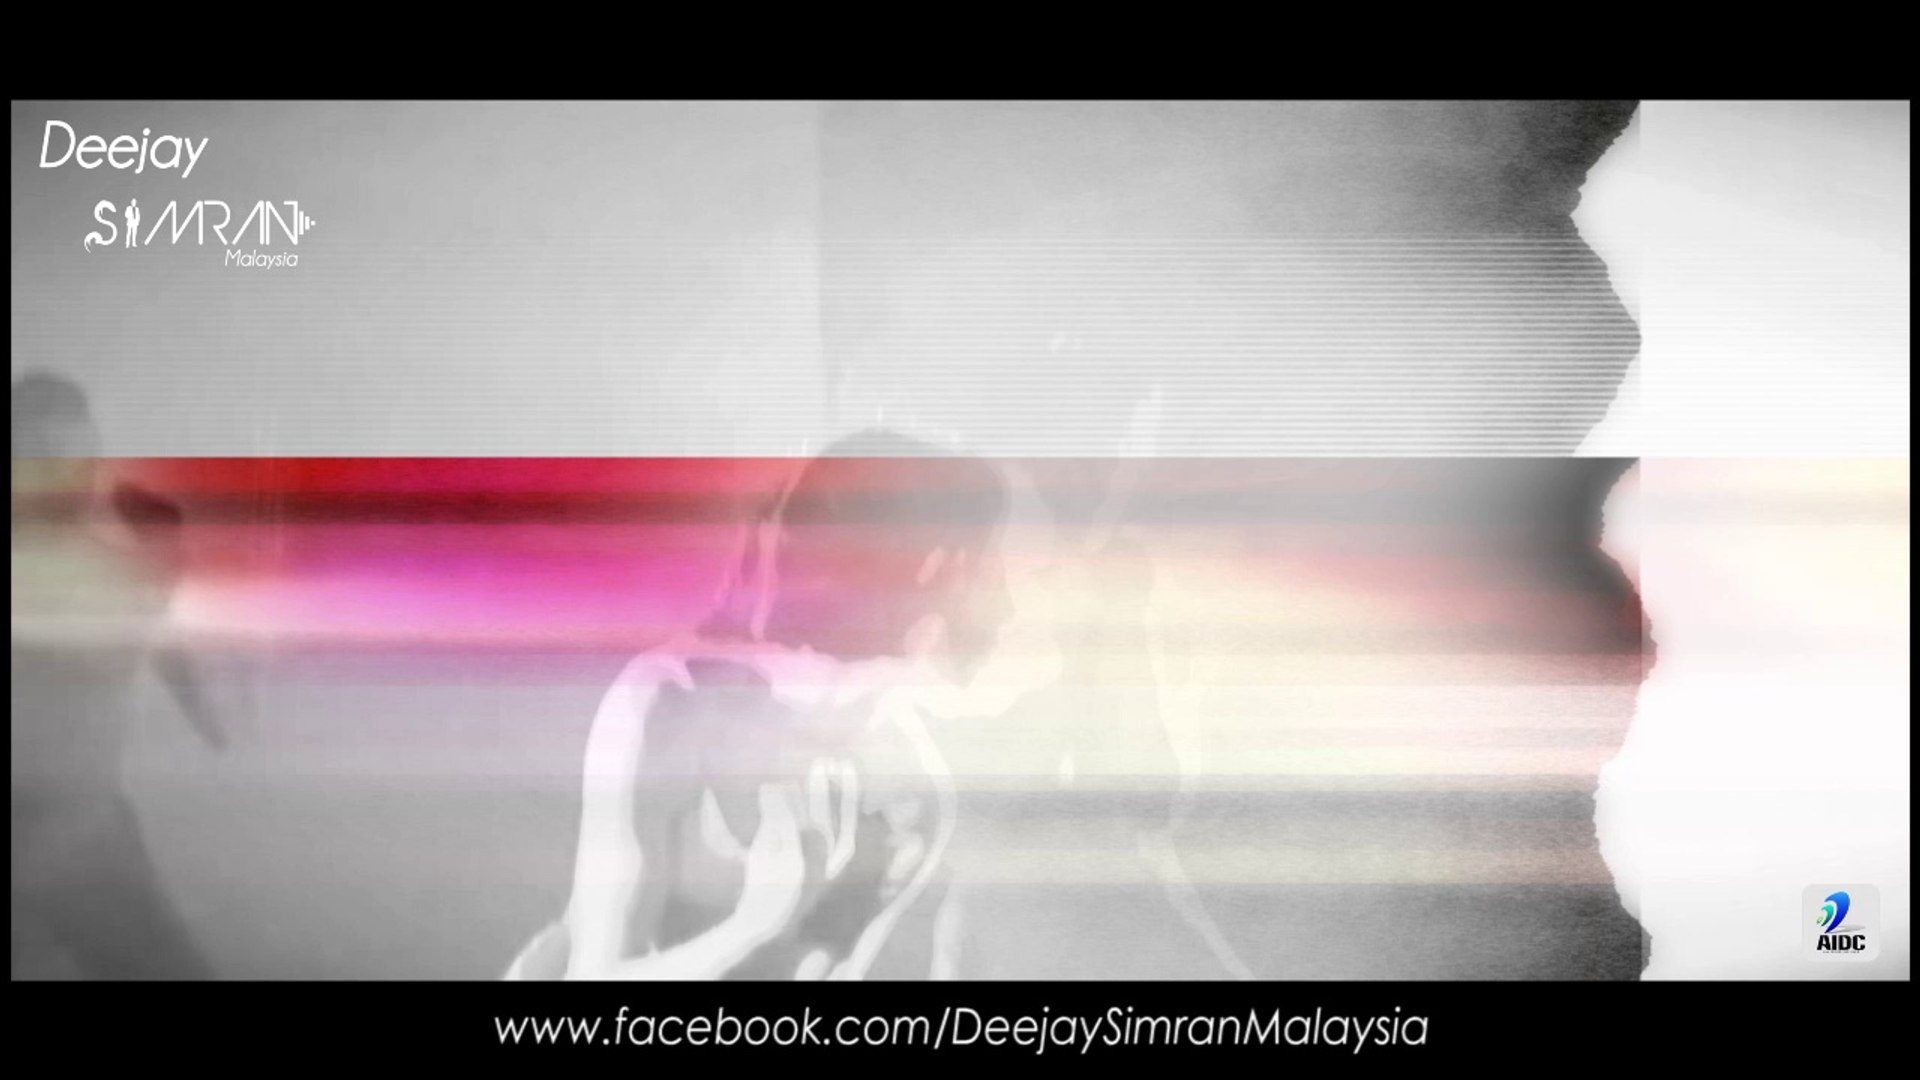 Cheap Thrills - Deejay Simran (Malaysia) From The Album Desi Voltz Vol.1